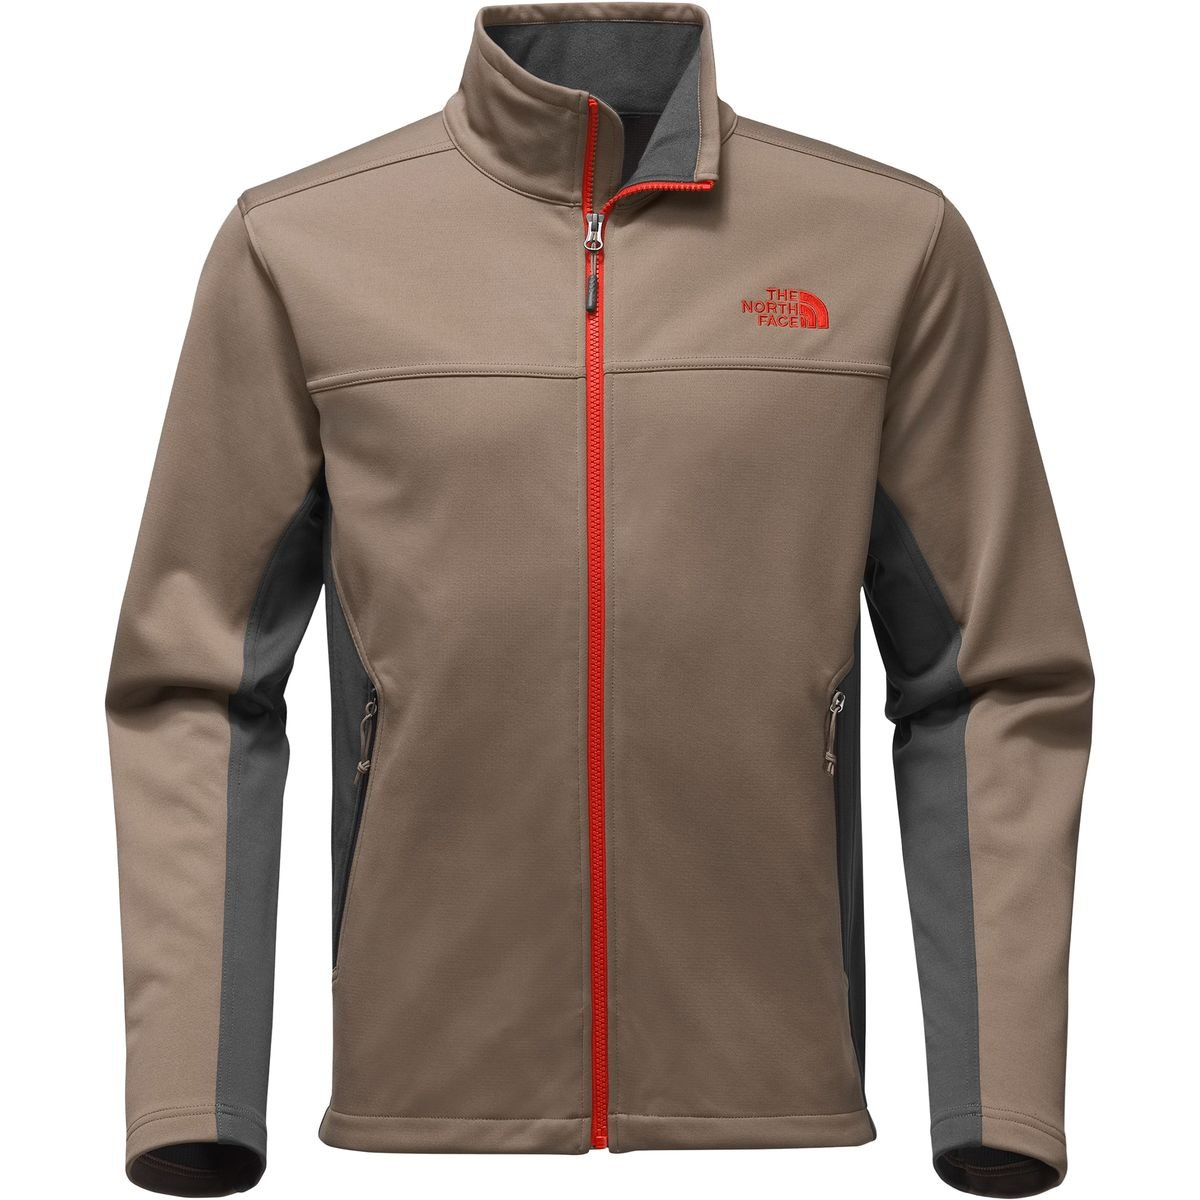 The North Face Men's Apex Canyonwall Jacket - Falcon Brown/Asphalt Grey - XL (Past Season) by The North Face